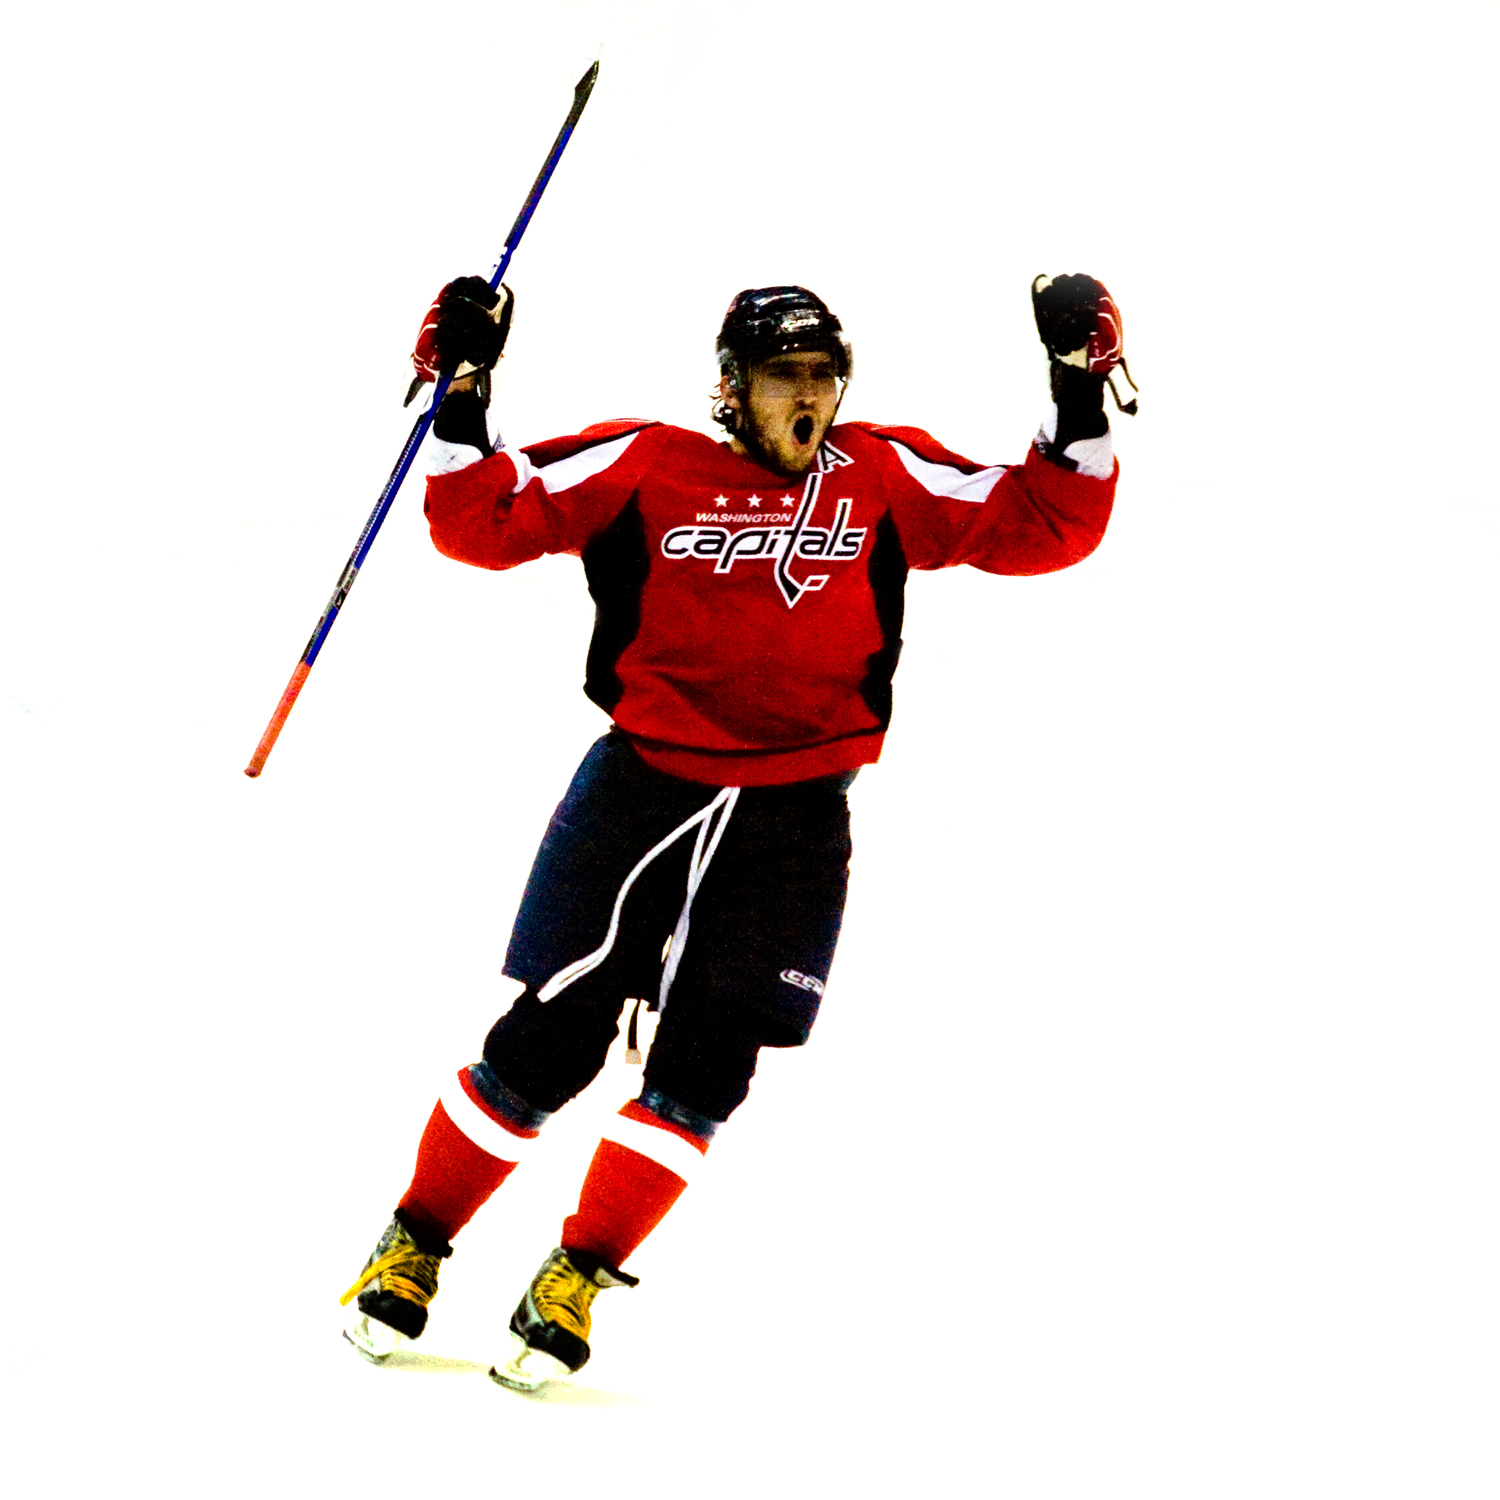 NHL Superstar Alex Ovechkin